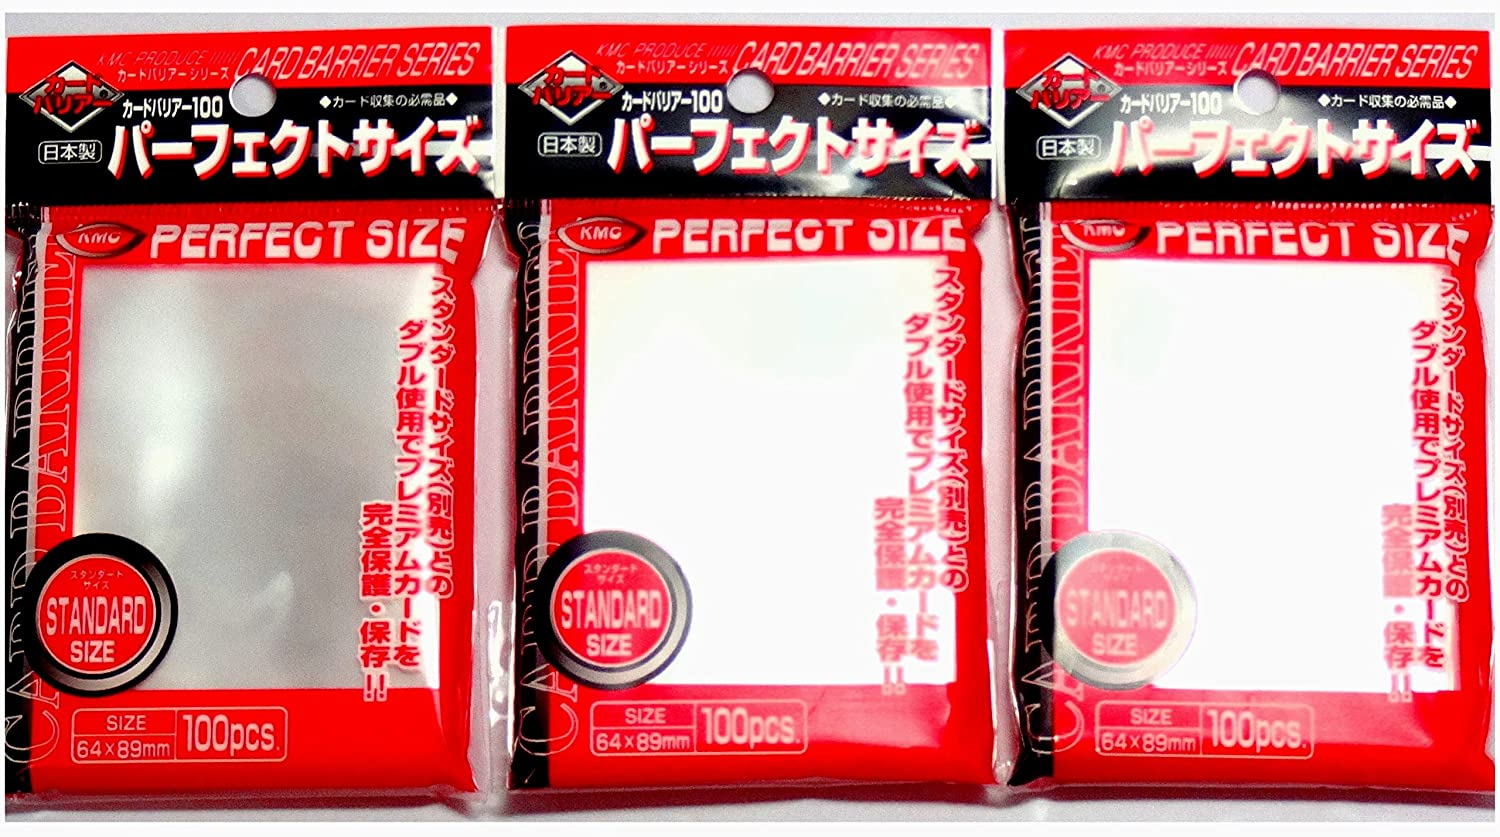 400 KMC Perfect Size SLEEVES 64 x 89 mm Inner Fit MTG /& Pokemon Card